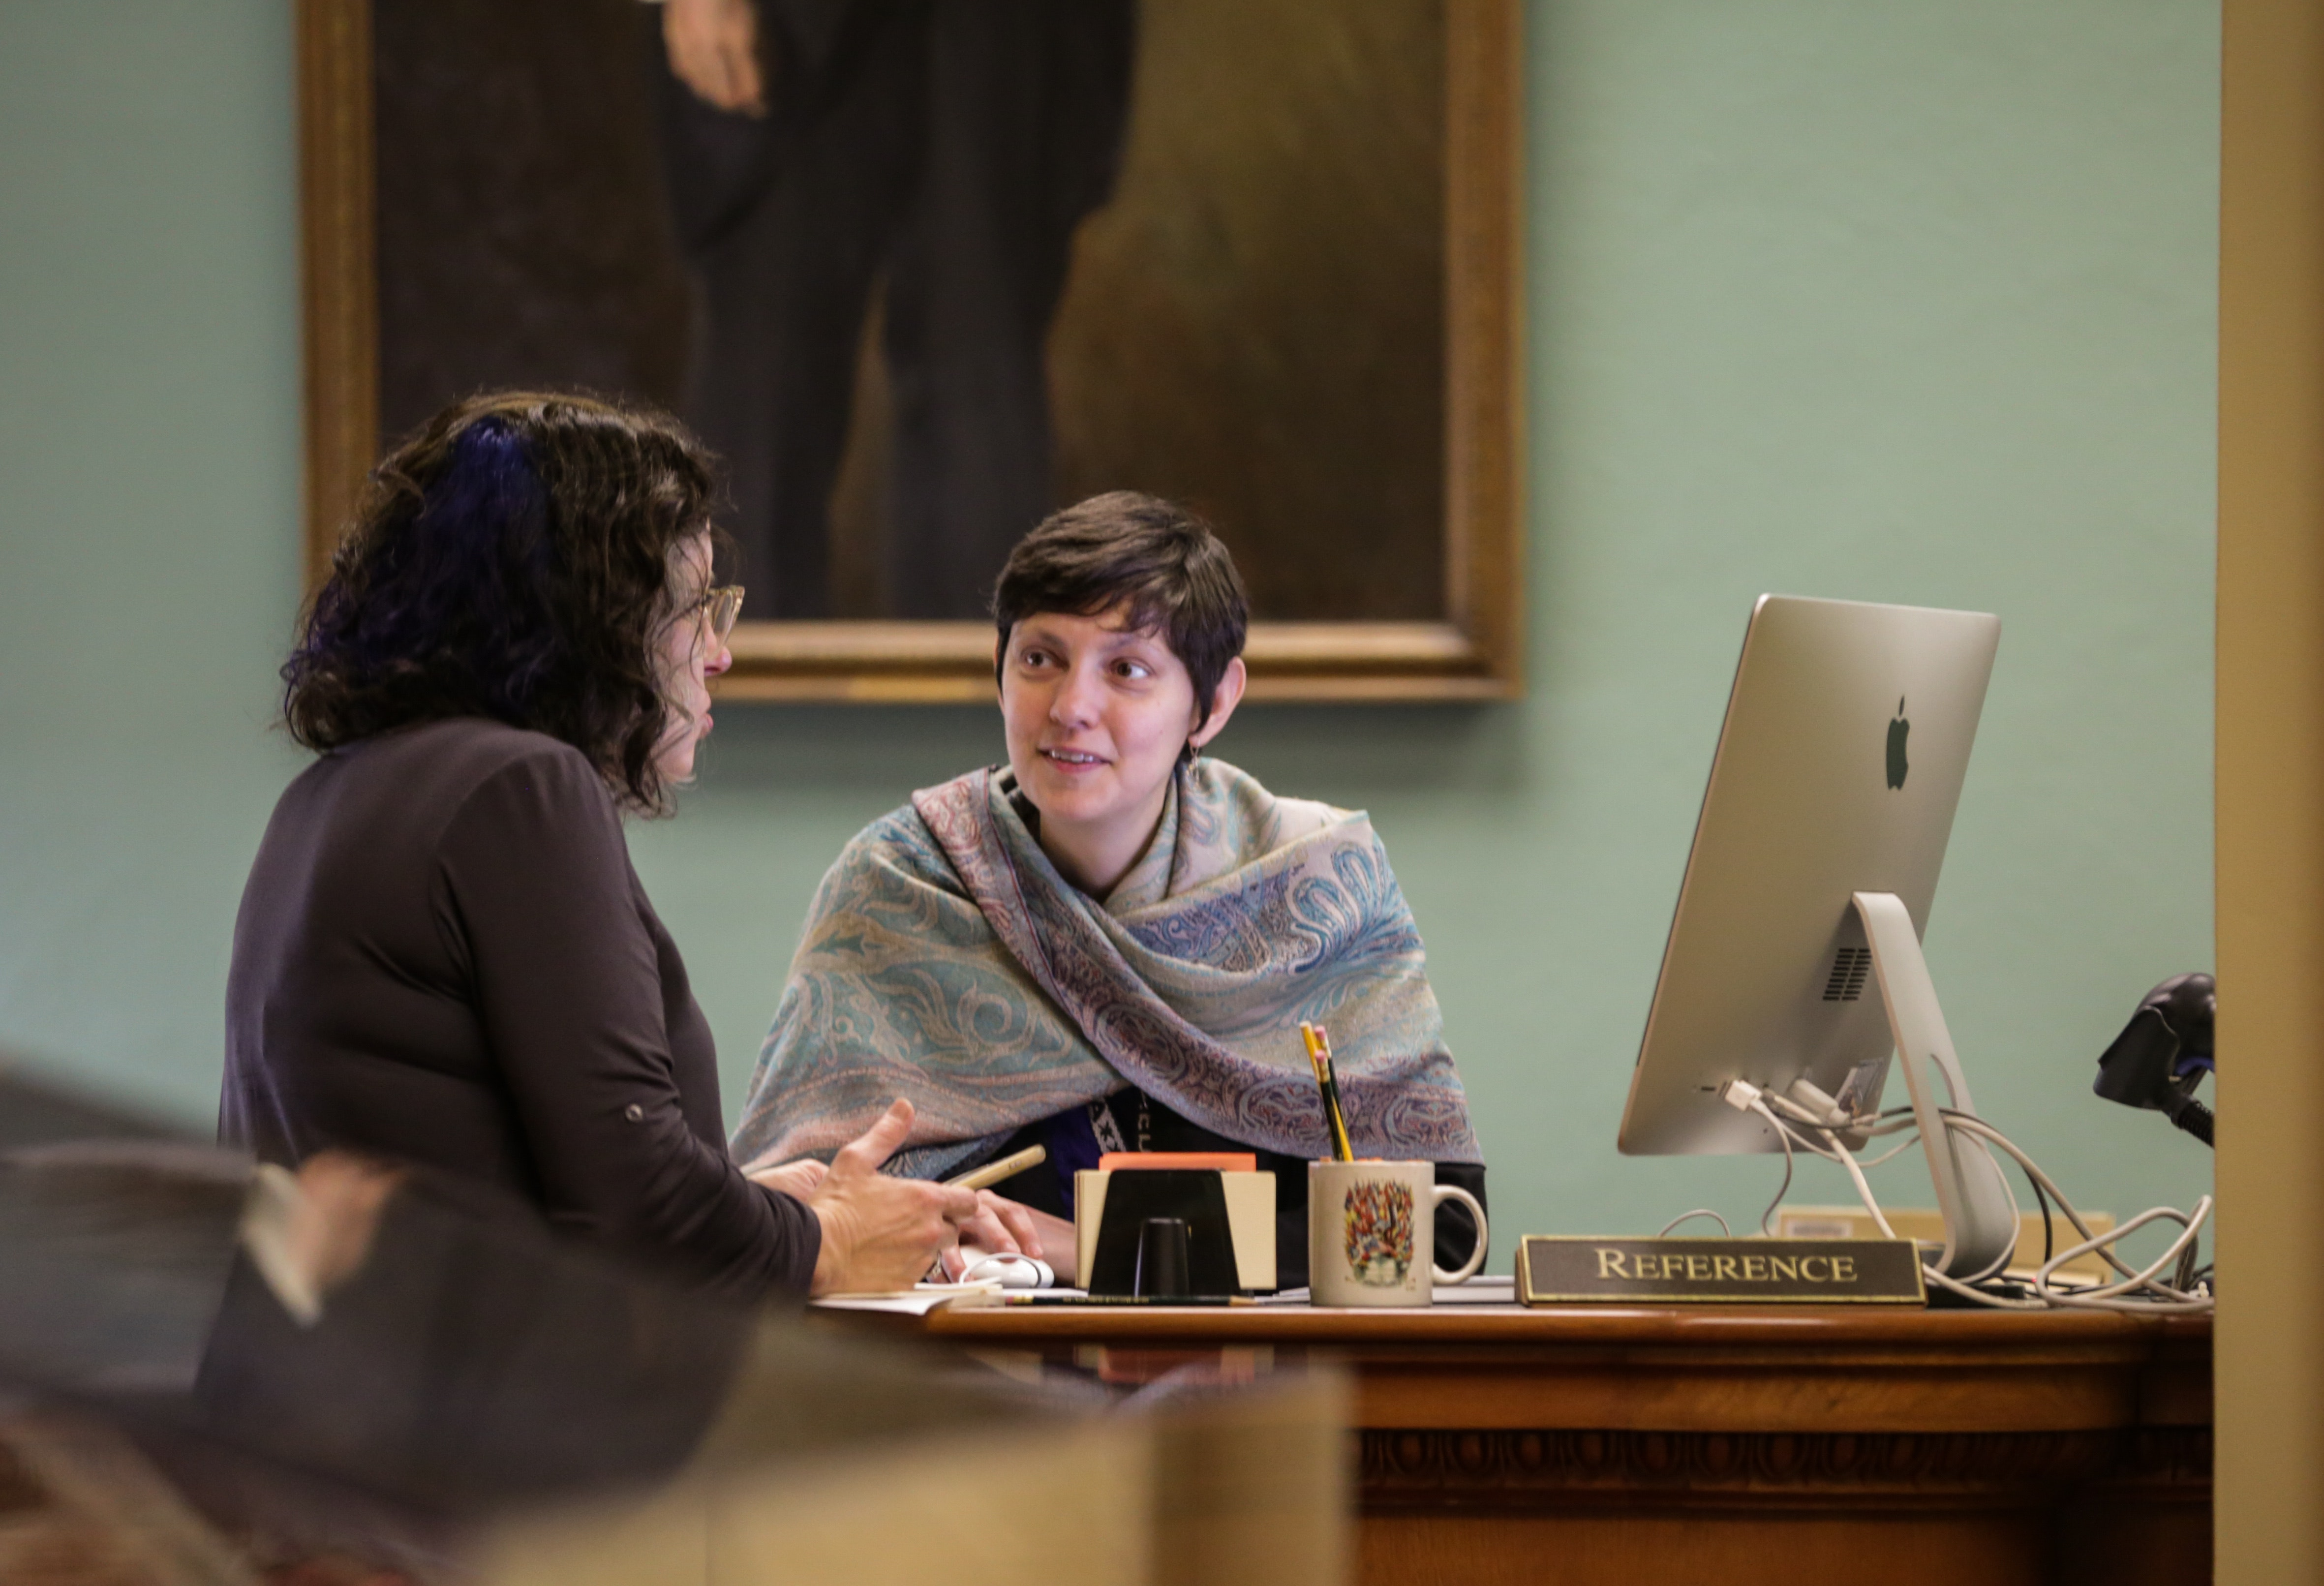 Image of two women at a desk, one sitting at a computer